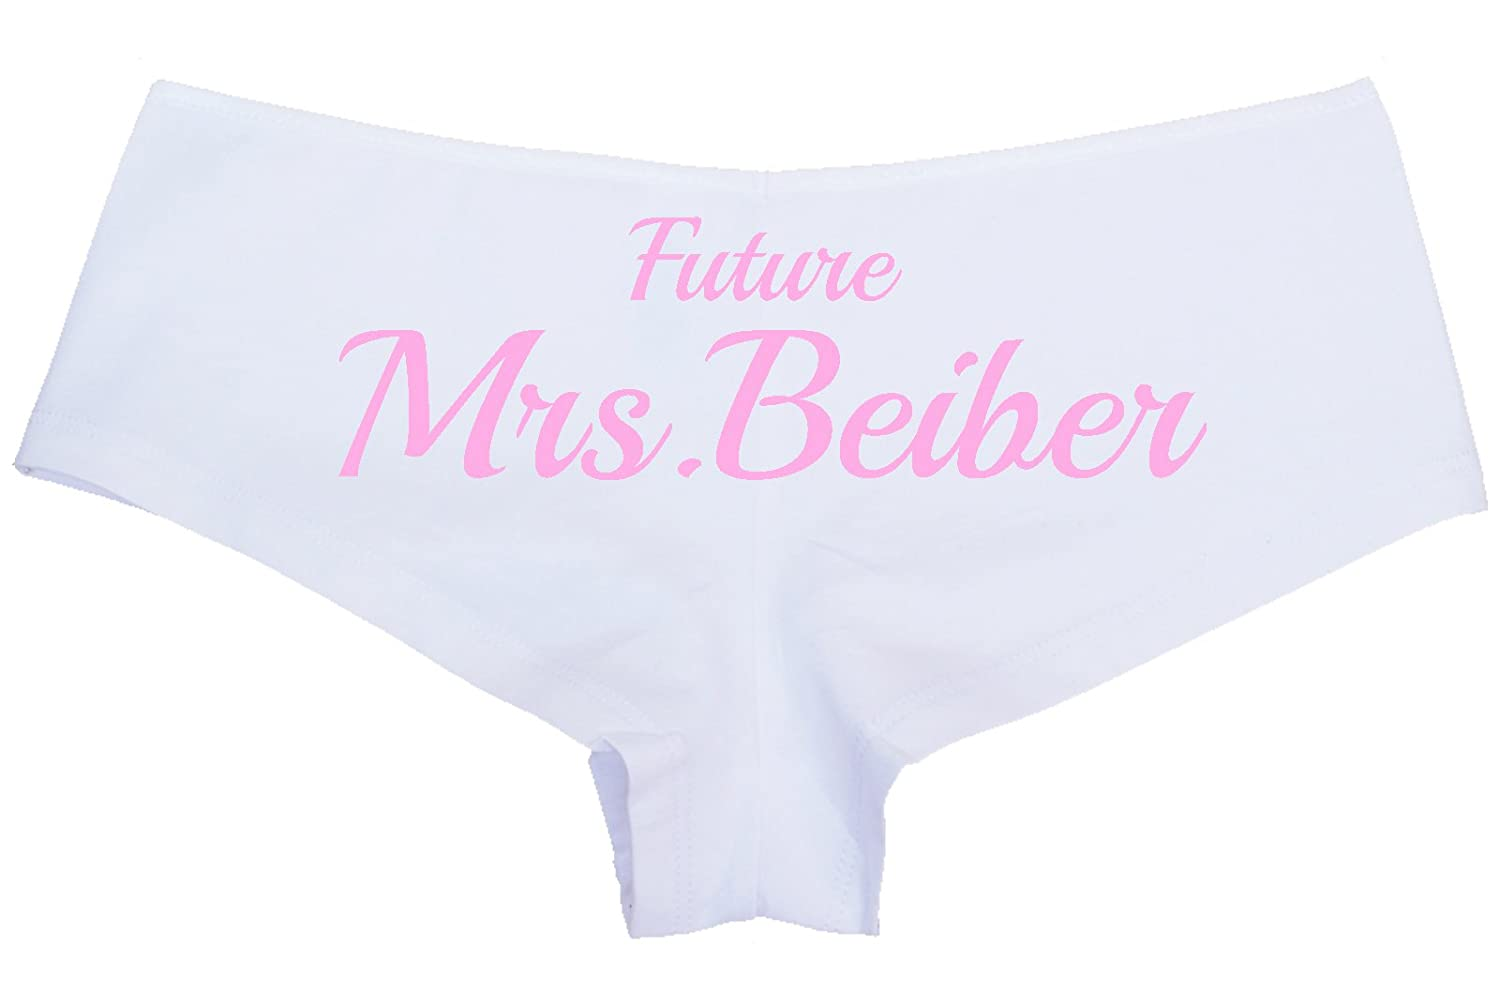 ffe84e309d4e94 Personalized Women s Wifey Future Mrs. Bridal Honyemoon Panties Hot Sexy  Love My Wife at Amazon Women s Clothing store